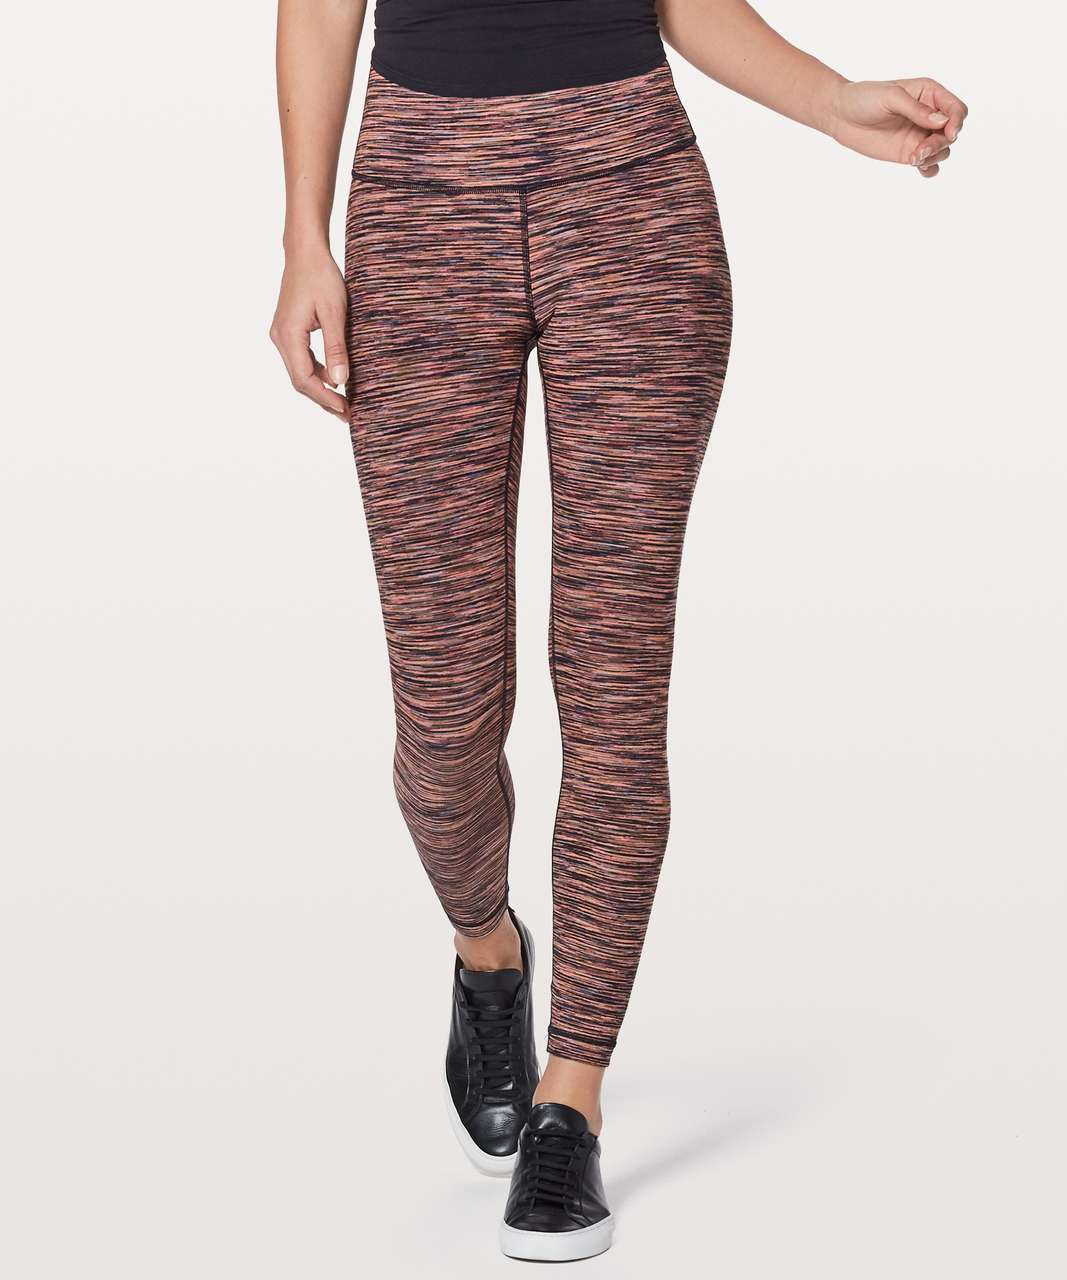 "Lululemon Wunder Under Hi-Rise 7/8 Tight *Luxtreme 25"" - Warp Speed Filtered Orange Electric Coral"